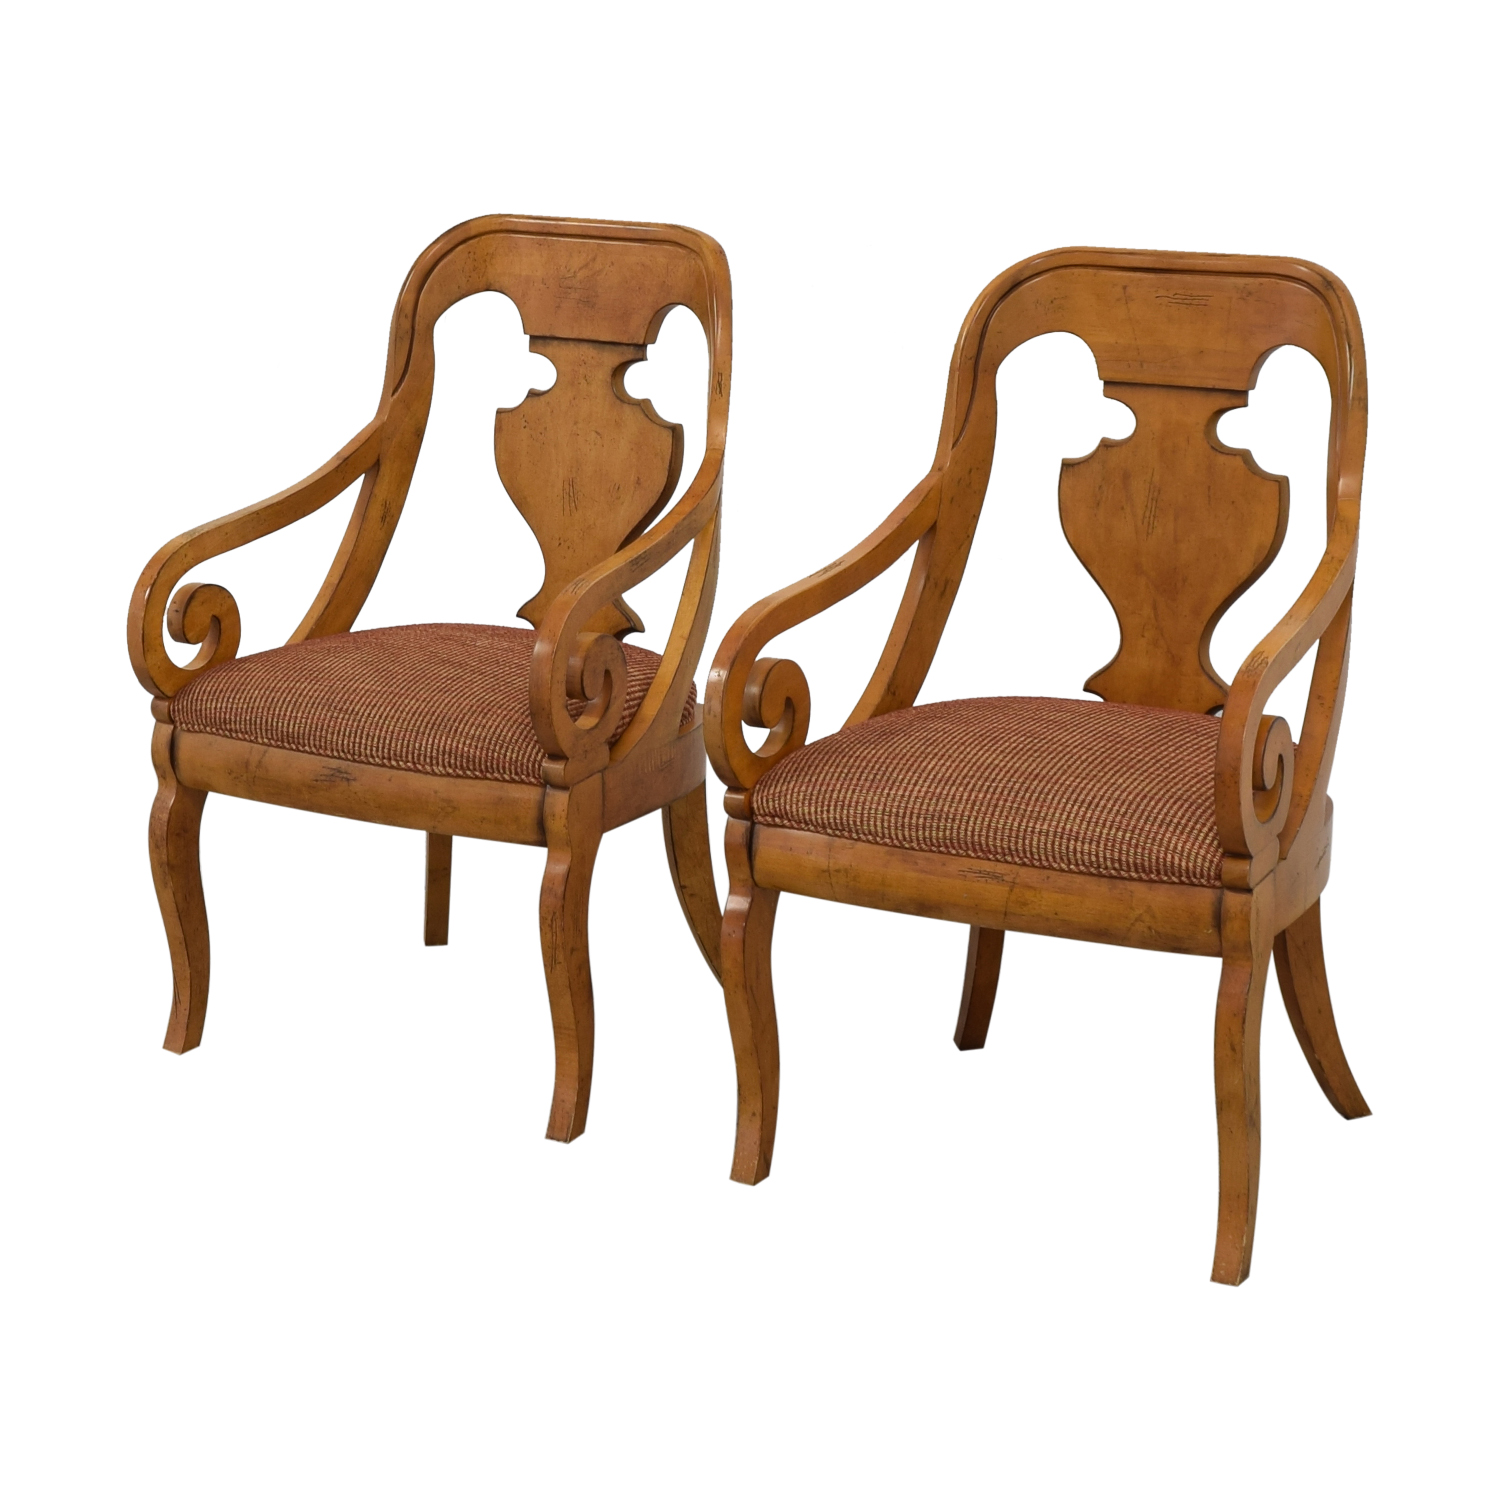 Lillian August Lillian August Upholstered Side Chairs light brown & red